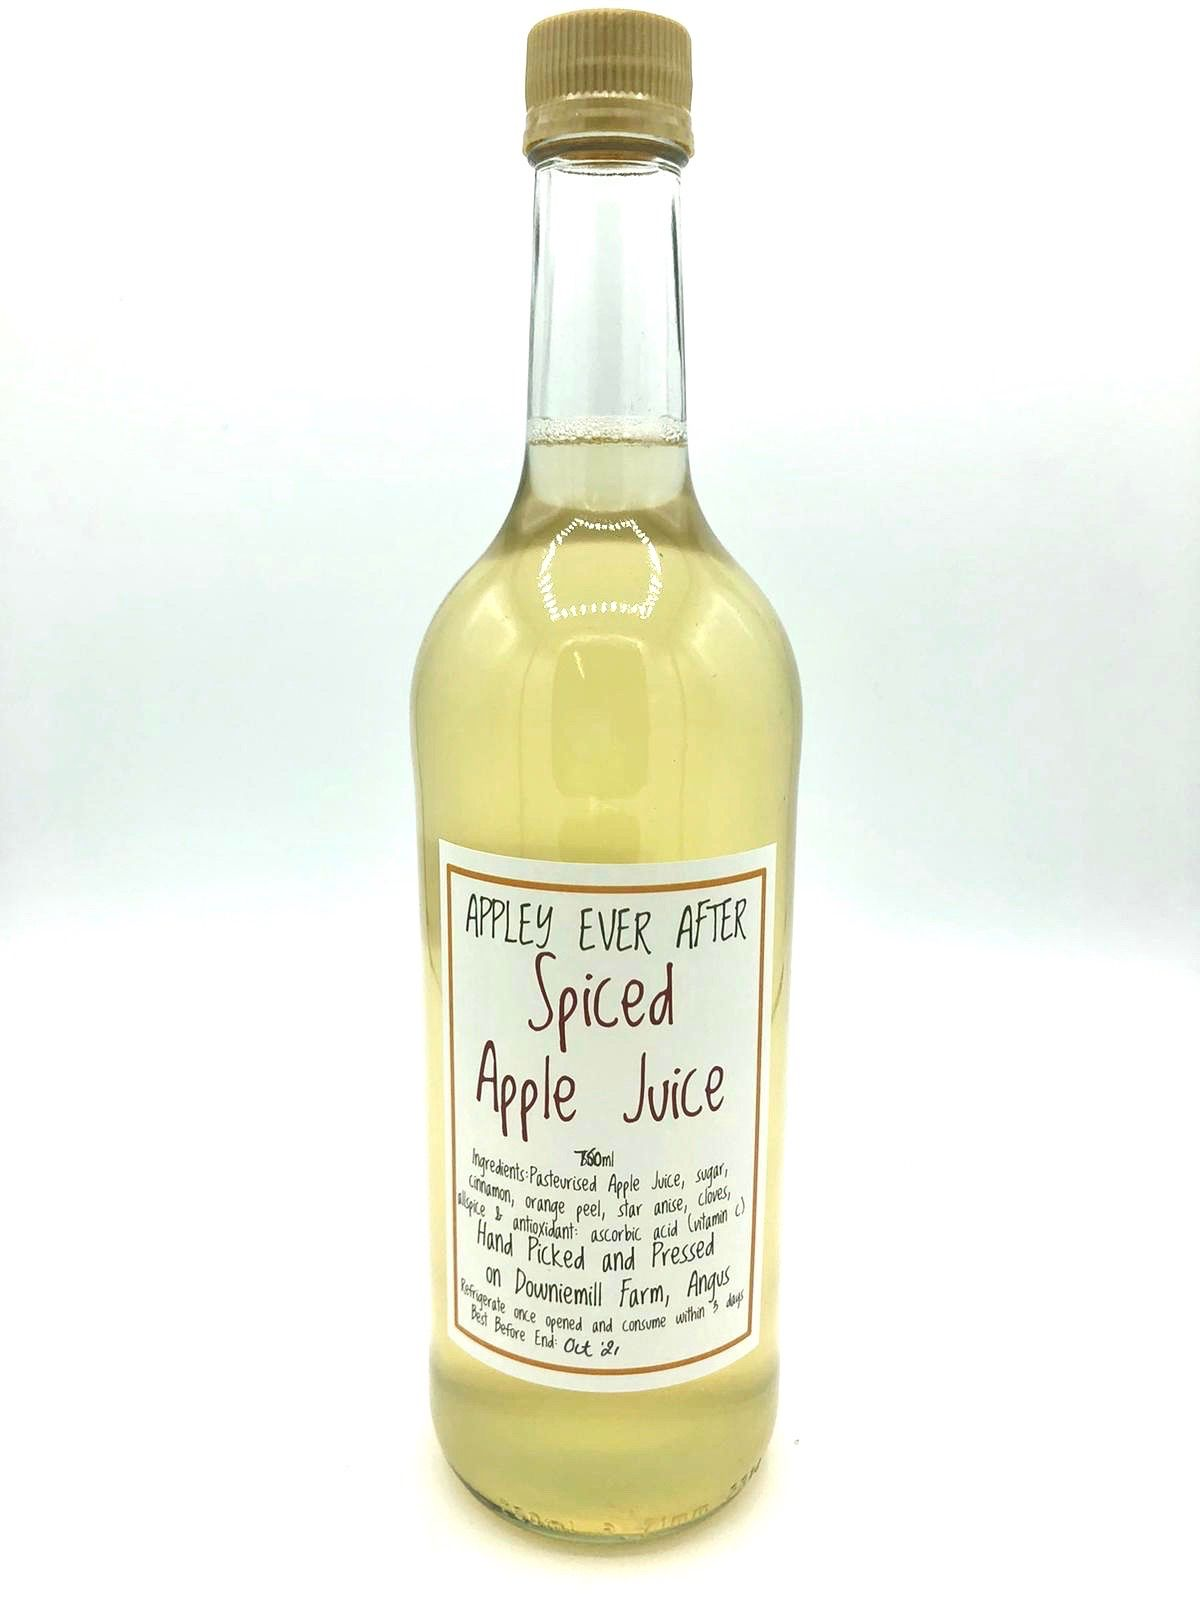 Appley Ever After Spiced Apple Juice